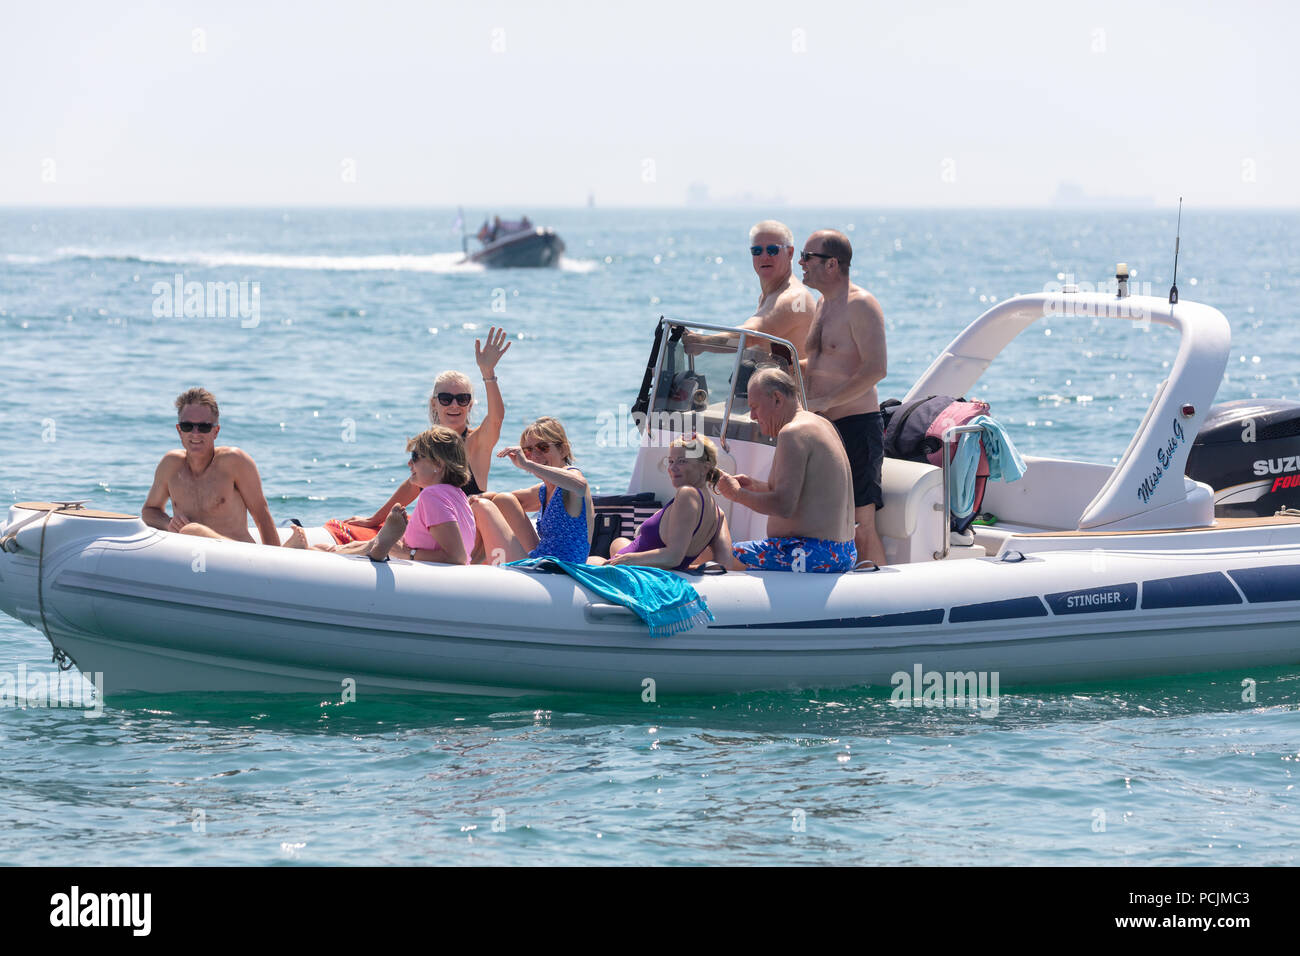 English Channel, Near the Isle of Wight; 7th July 2018; Group of People Watching the Round the island Yacht Race From a RIB - Stock Image